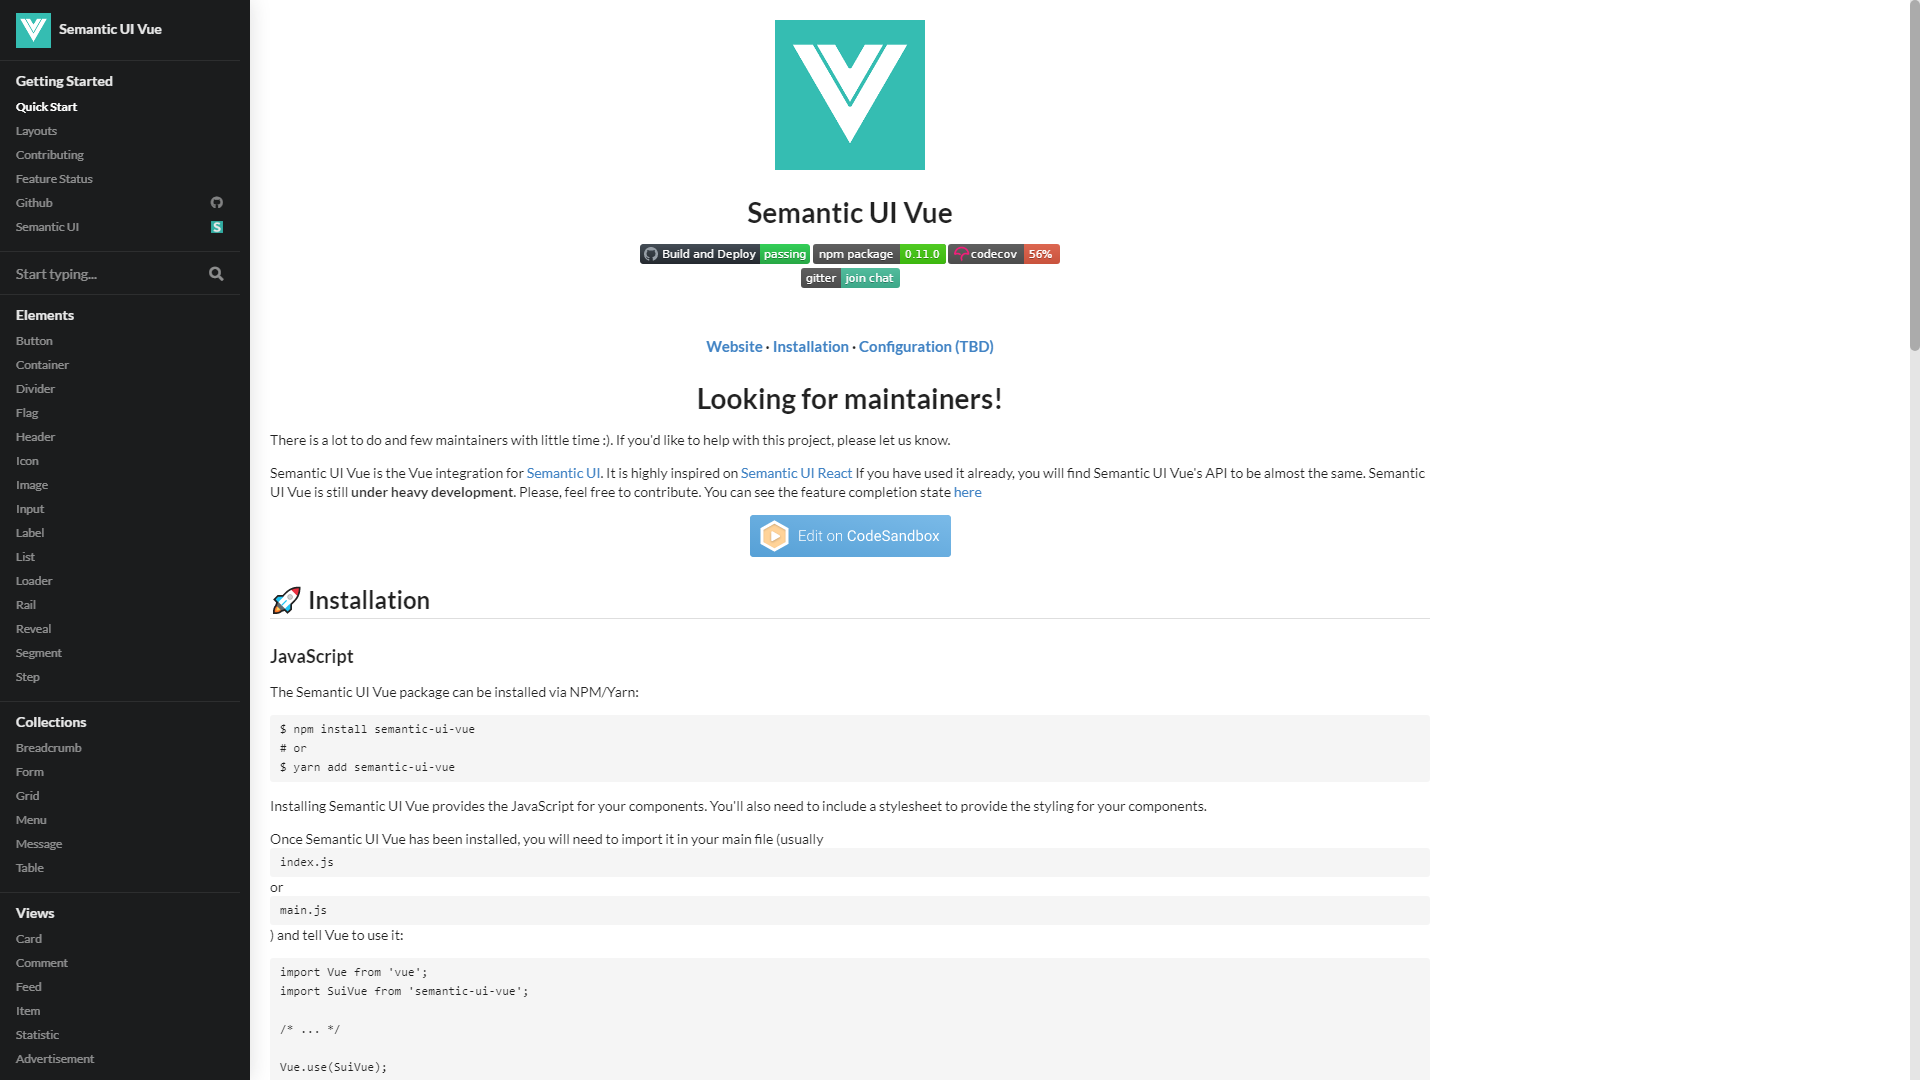 Semantic UI Vue VueJS UI Component Libraries